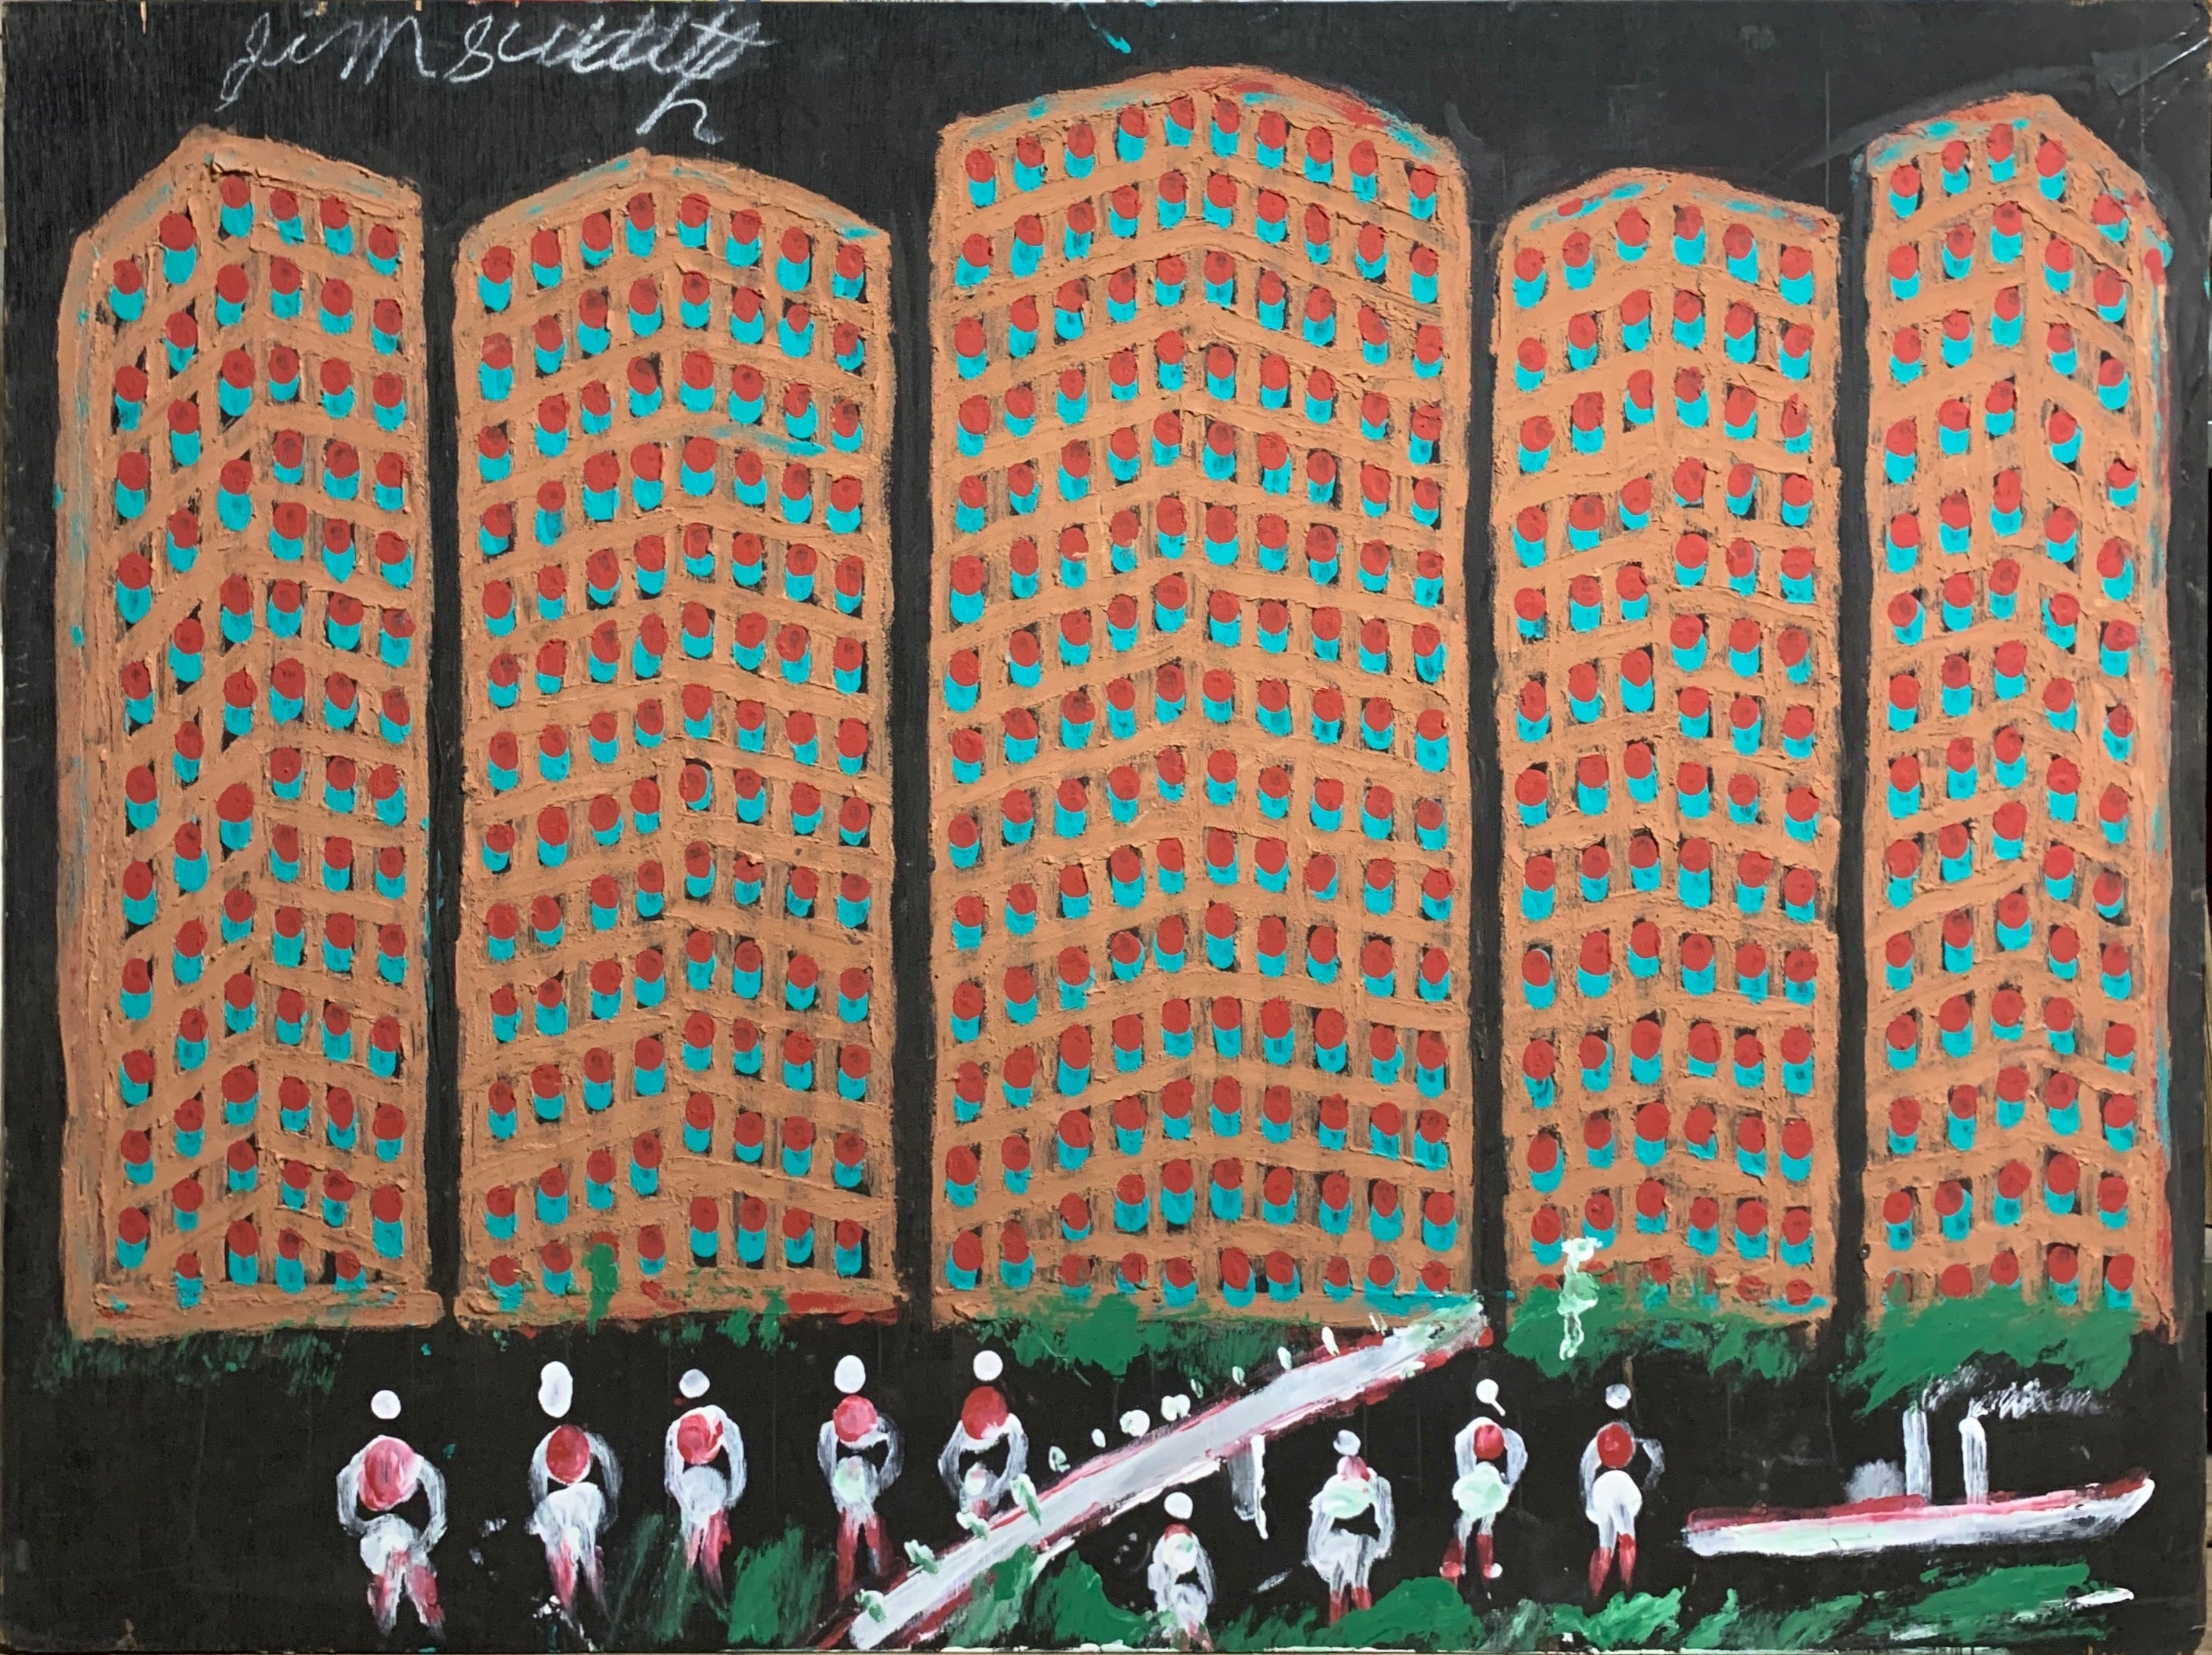 Waterfront Apartments #30, Jimmie Lee Sudduth Painting